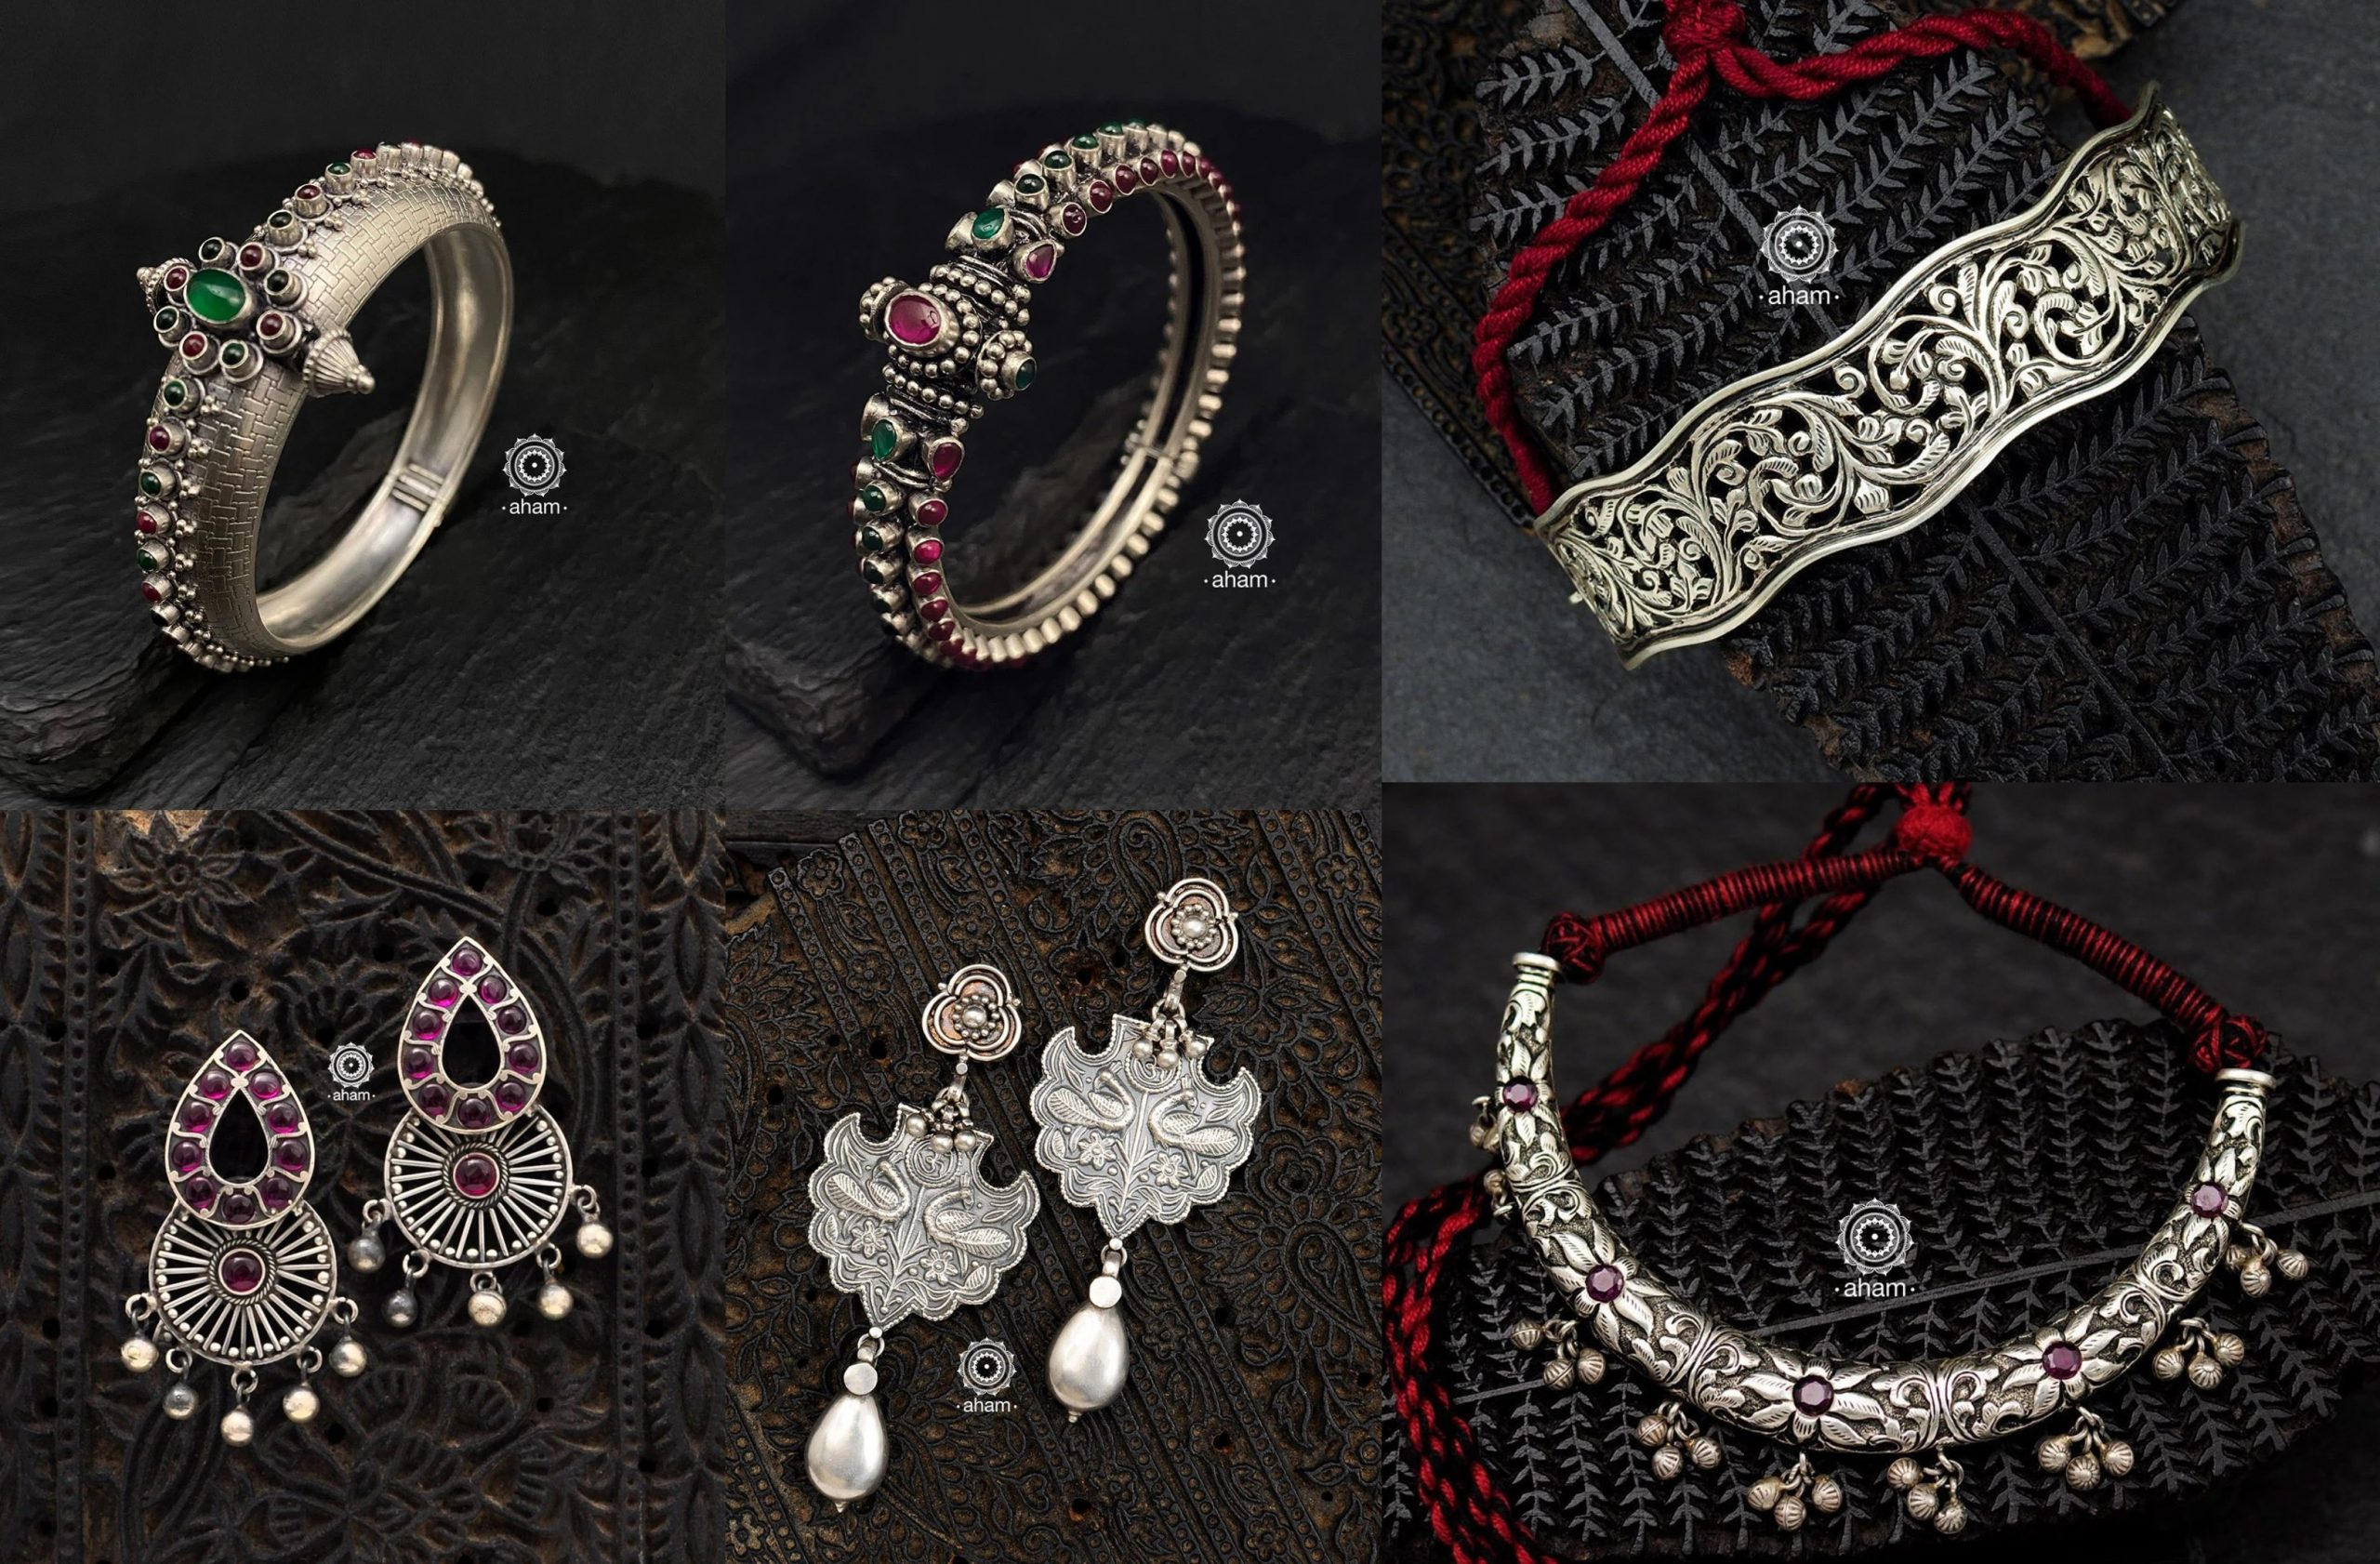 Ethereal Silver Jewellery Collection By Aham Jewellery!